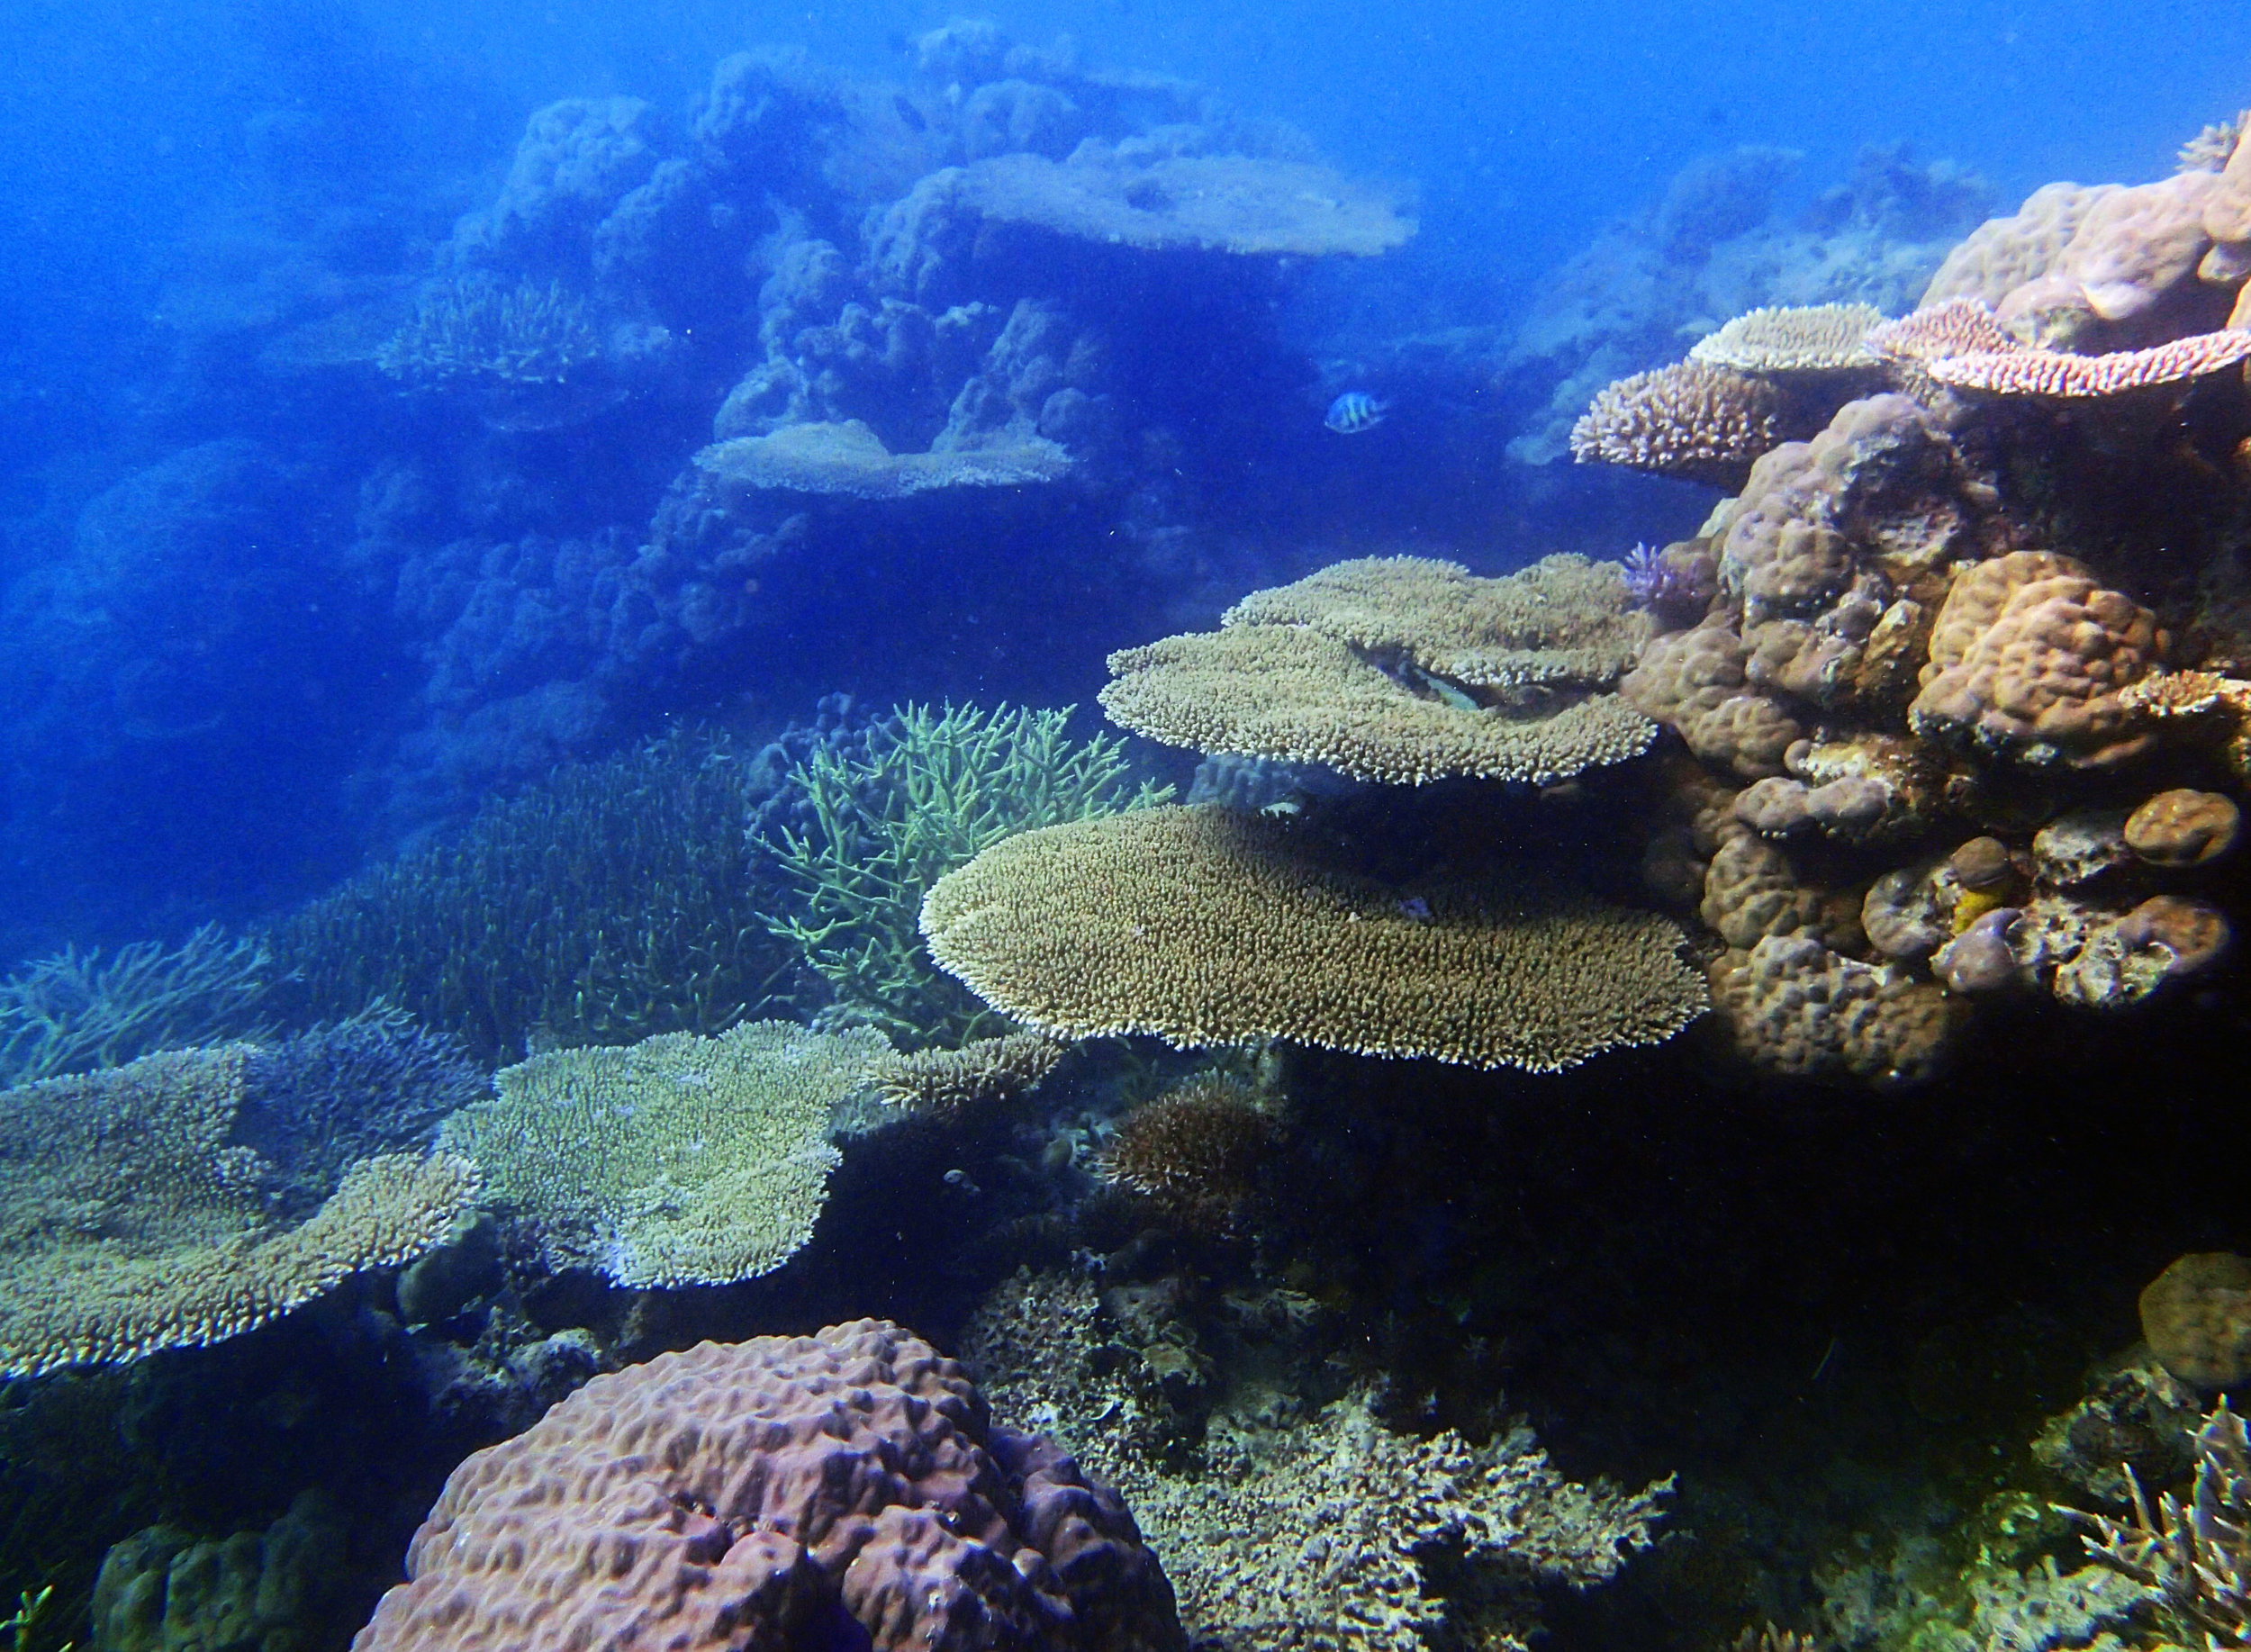 lagoonal patch reef 1-26-15.jpg